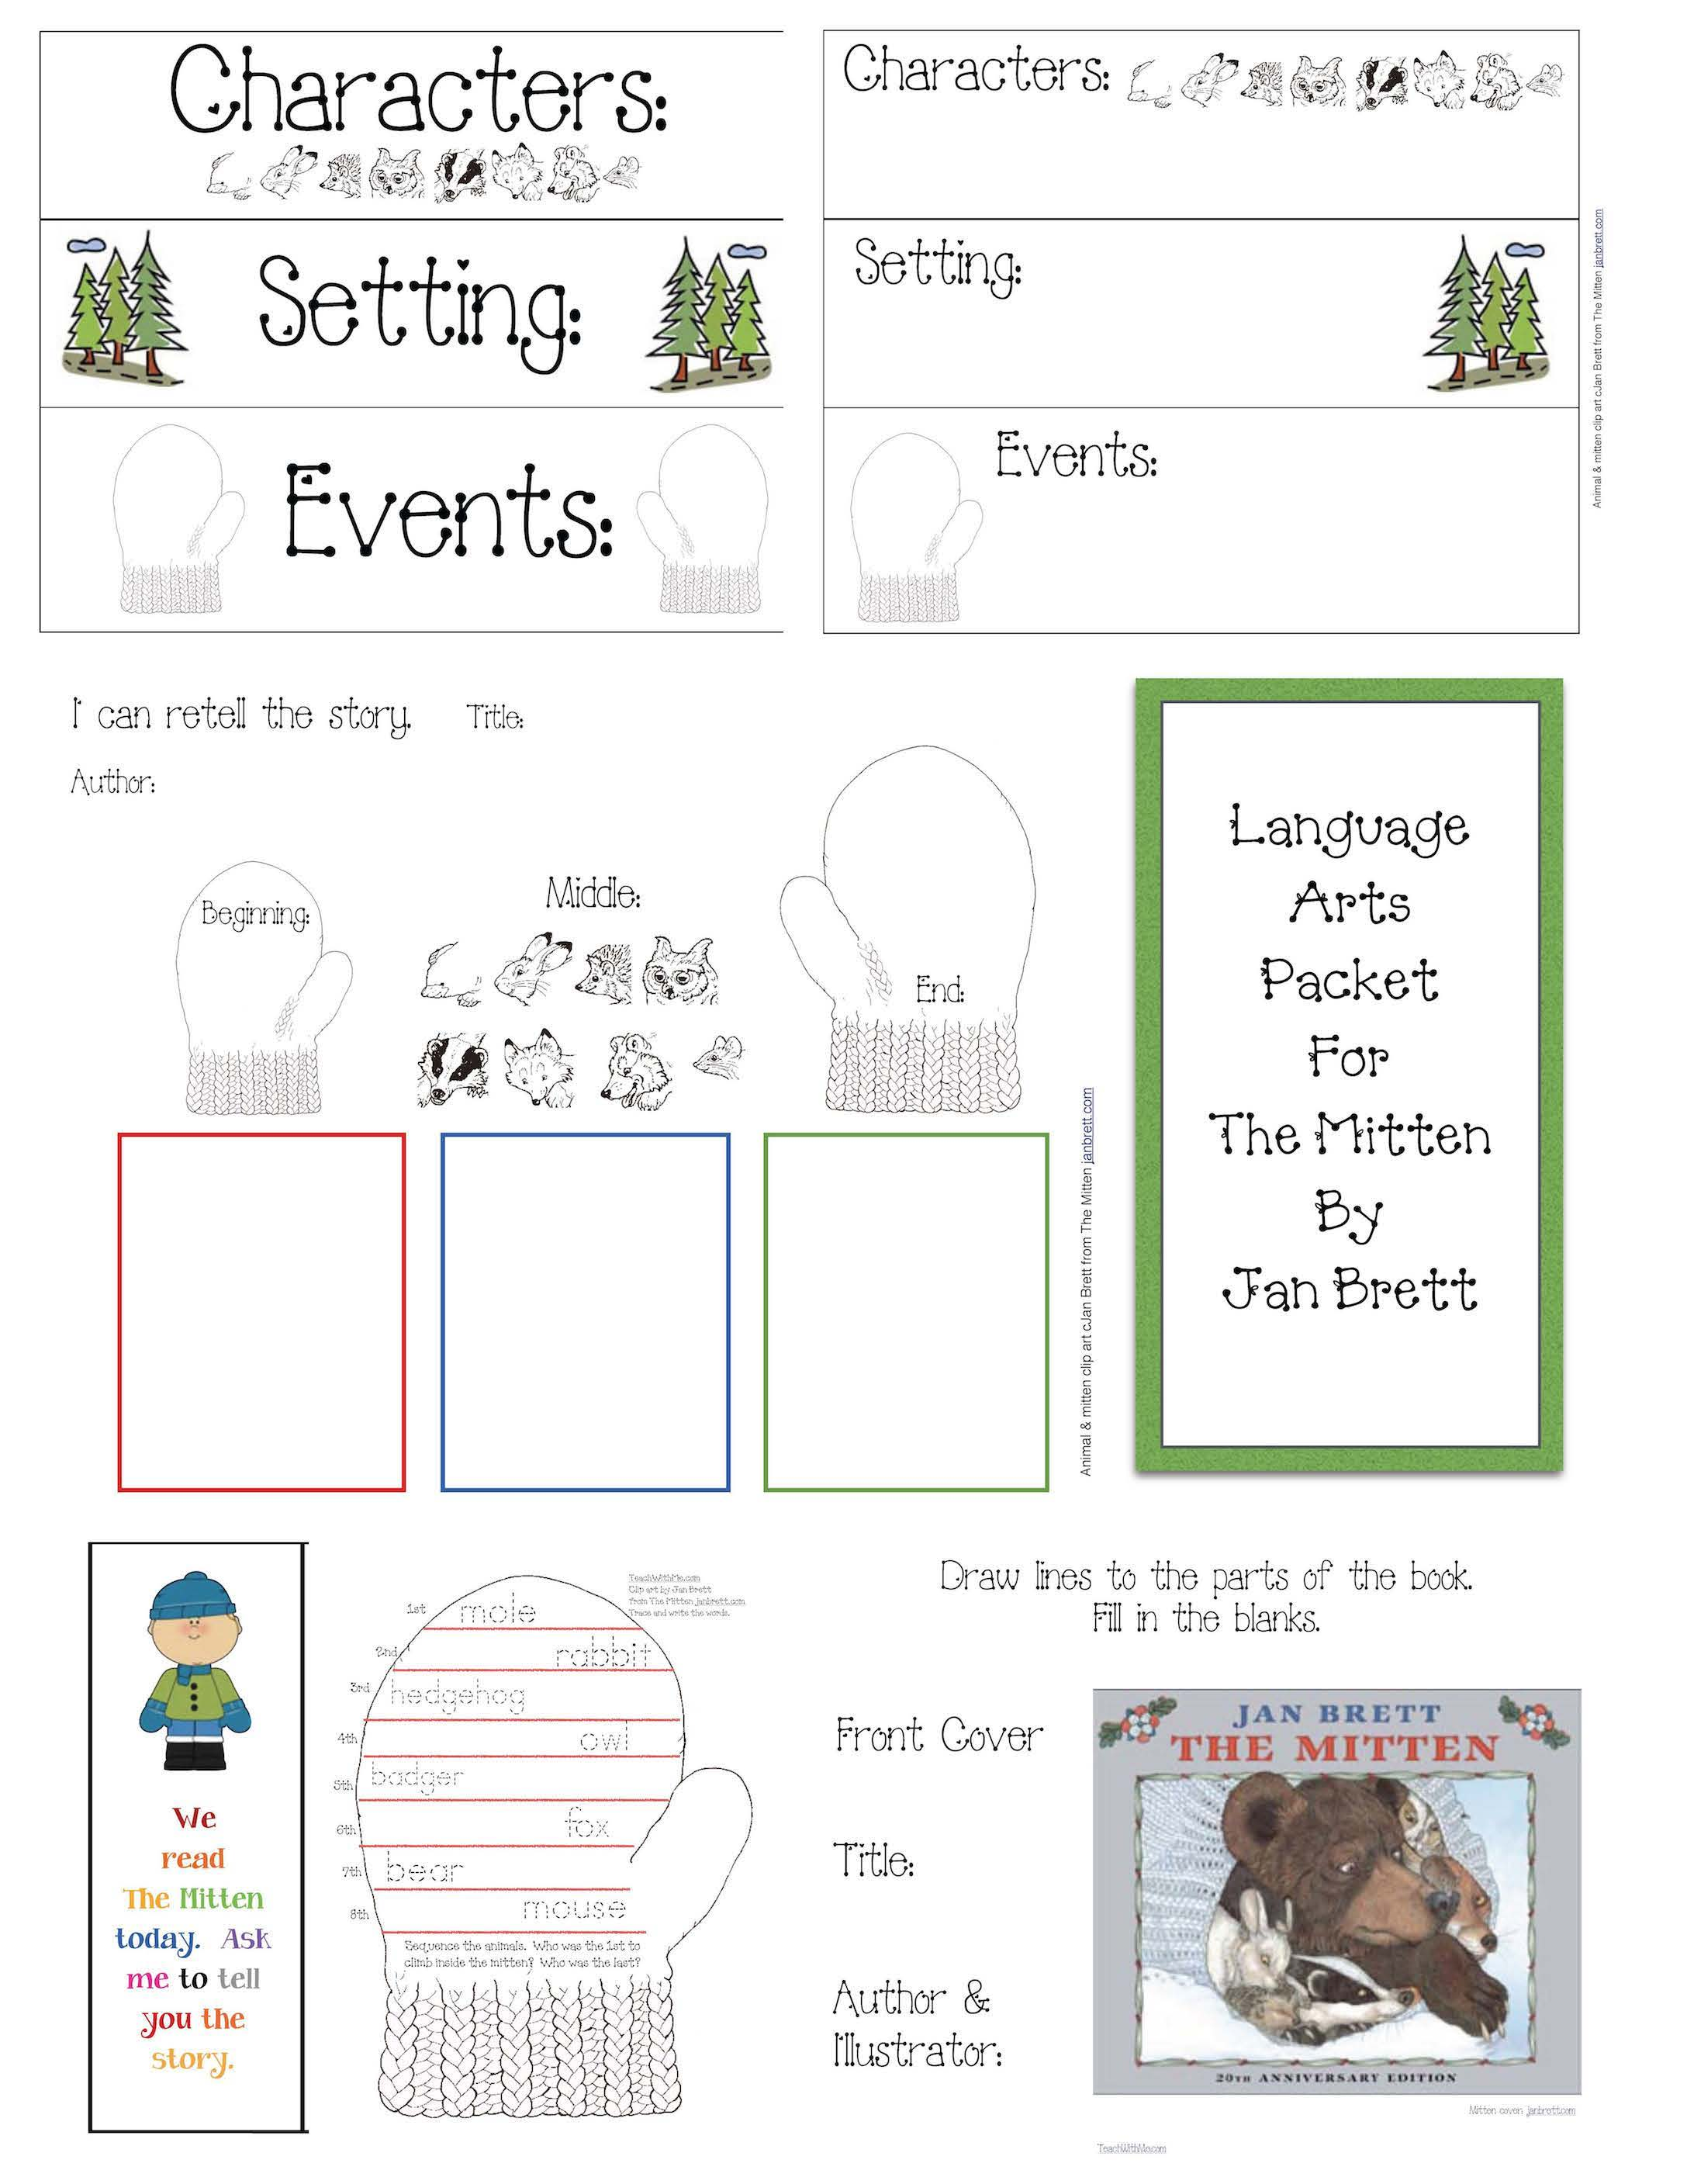 activities to go with Jan bretts books, the mitten activities, end punctuation activities, ordinal number activities, capitalization activities, pocket chart cards for the mitten, mitten crafts, graphic organizers, the mitten book, activities to go with the mitten, sequencing a story, common core mittens, end punctuation practice, Venn diagrams, venn diagram comparing the mitten, story cards for the mittenactivities to go with Jan bretts books, the mitten activities, end punctuation activities, ordinal number activities, capitalization activities, pocket chart cards for the mitten, mitten crafts, graphic organizers, the mitten book, activities to go with the mitten, sequencing a story, common core mittens, end punctuation practice, Venn diagrams, venn diagram comparing the mitten, story cards for the mitten